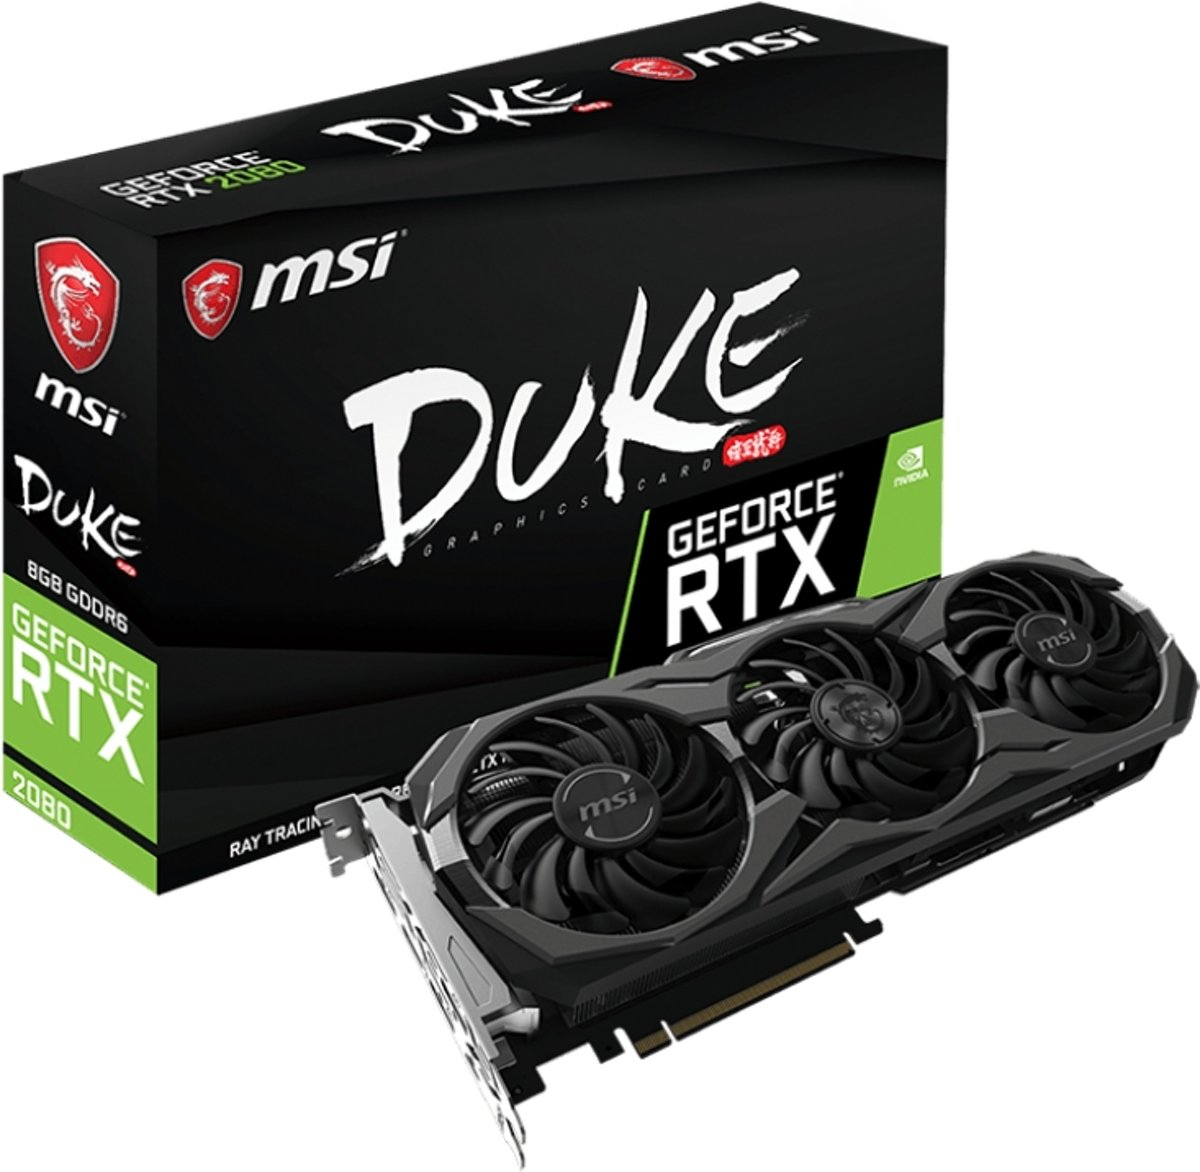 GeForce RTX 2080 DUKE 8G OC